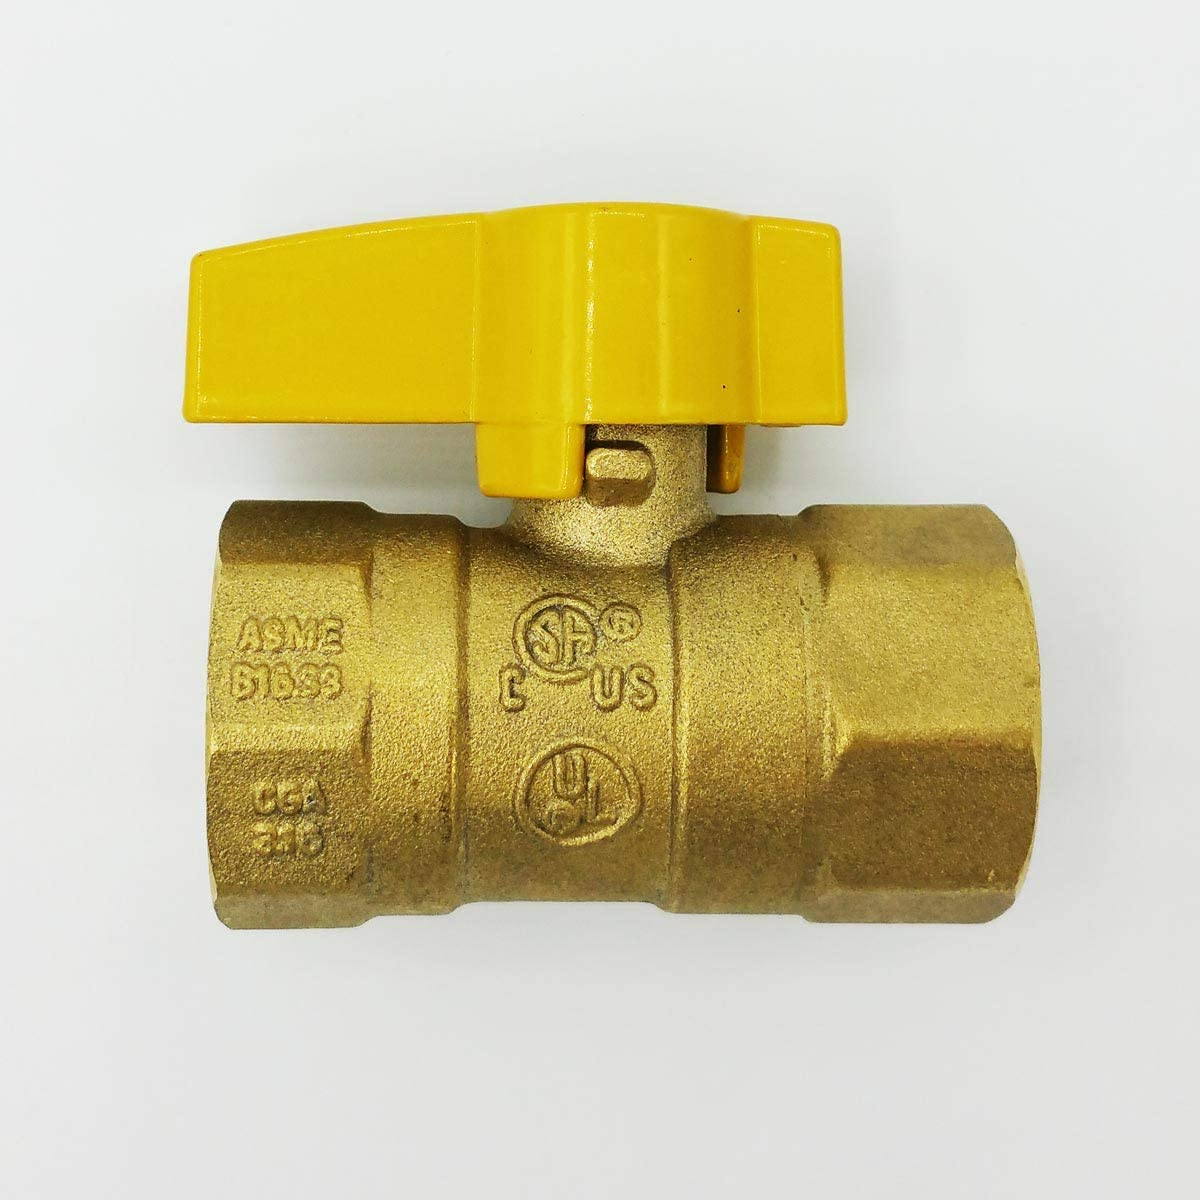 5//8 Inch Outer Diameter With Male /& Female Fittings And Shut Off Valve Cambridge Yellow Coated Gas Appliance Connector 36 Inch Long